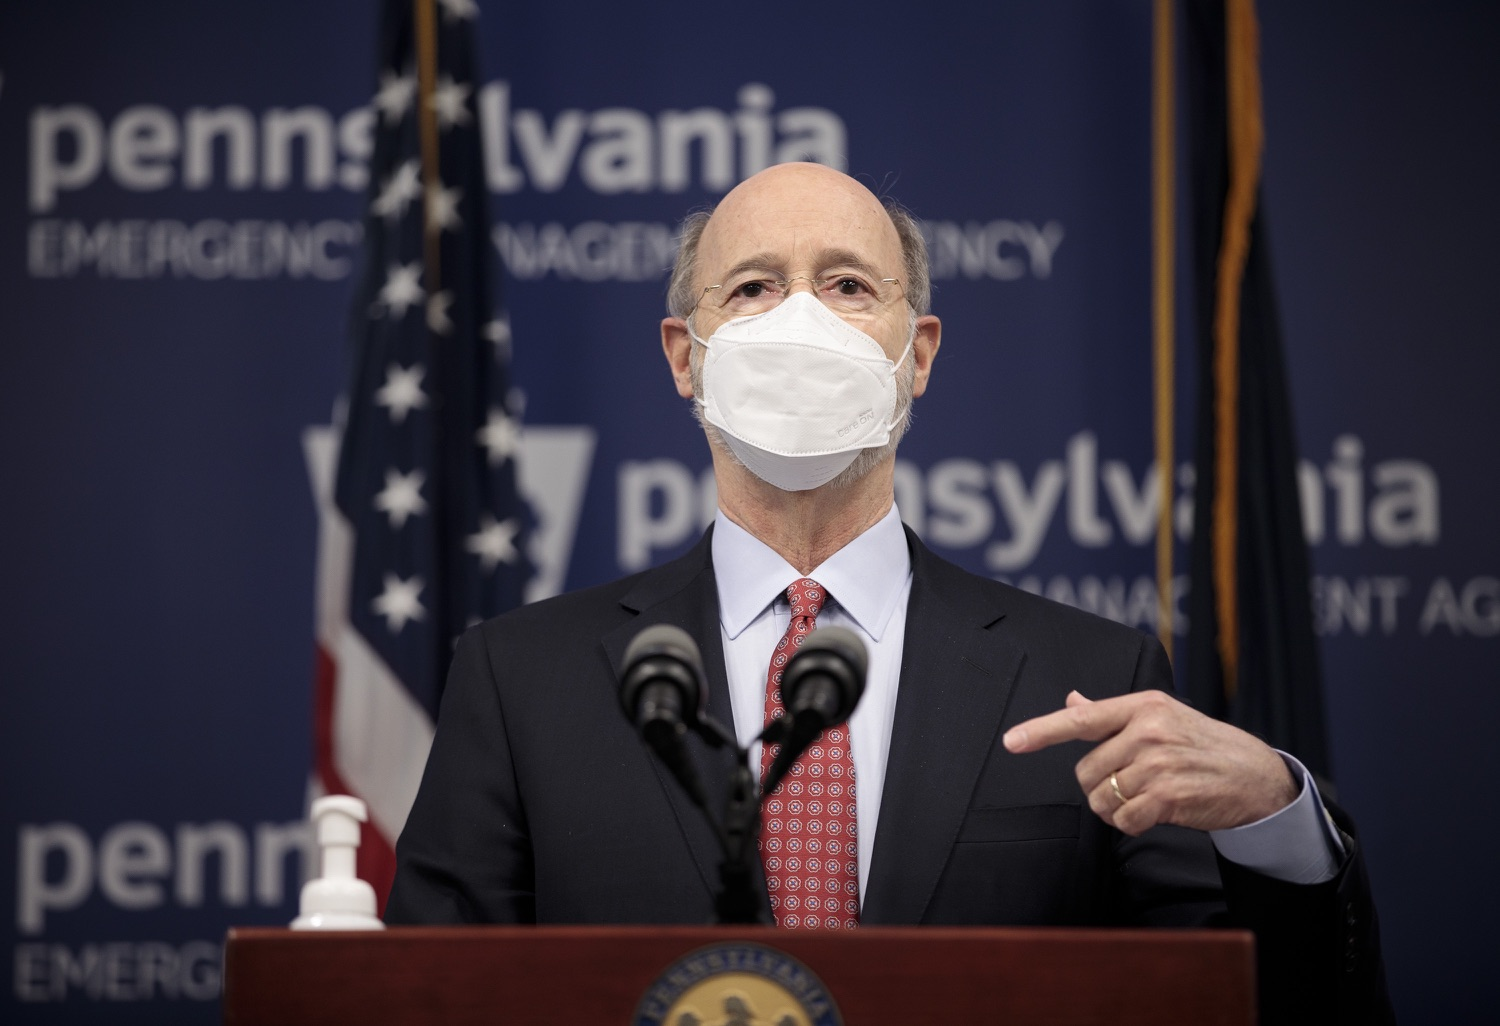 "<a href=""https://filesource.wostreaming.net/commonwealthofpa/photo/18535_gov_nellie_bly_dz_08.jpg"" target=""_blank"">⇣ Download Photo<br></a>Pennsylvania Governor Tom Wolf speaking at the press conference.  Governor Tom Wolf wants to bet on 44,000 students to help them earn a college degree while graduating with less debt and building successful lives in Pennsylvania. Today, the governor held a press conference to discuss how his historic Nellie Bly Scholarship Program would provide need-based financial assistance for students at 14 universities in the states system. Harrisburg, PA  February 17, 2021"